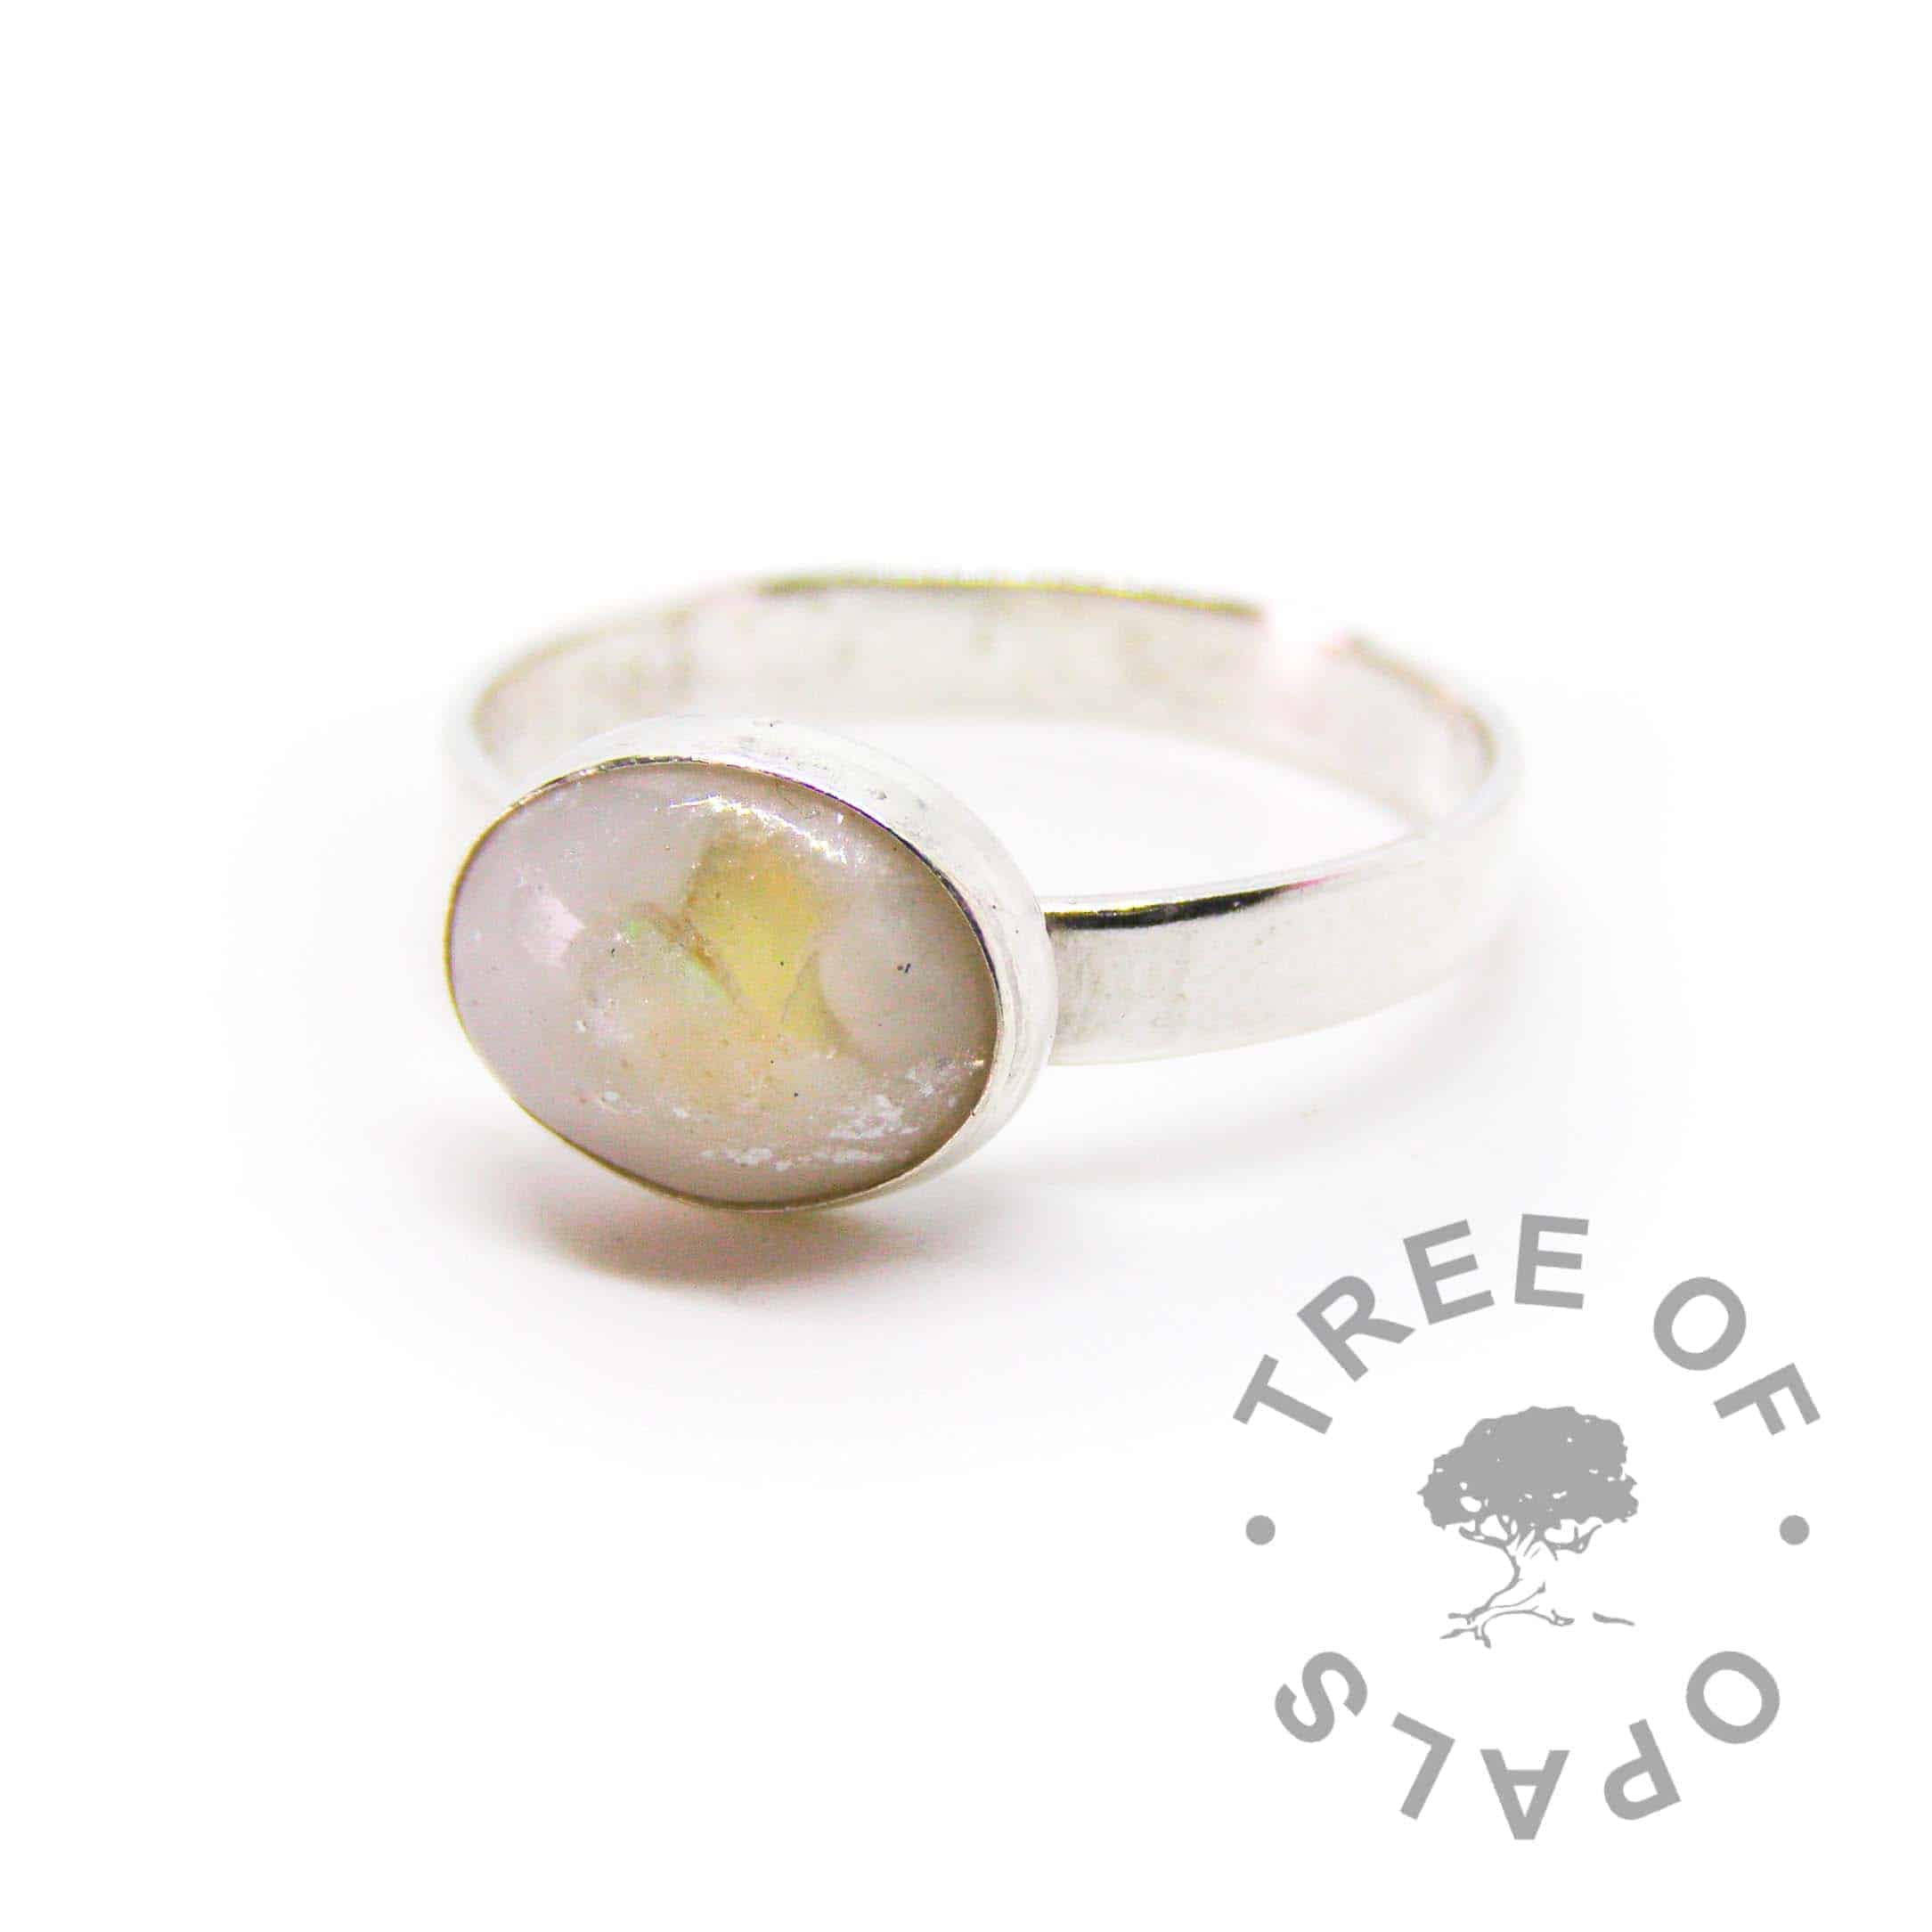 breastmilk ring with genuine opal for October birthstone of 5 year breastfeeding award and unicorn white sparkle mix. Brushed band handmade setting